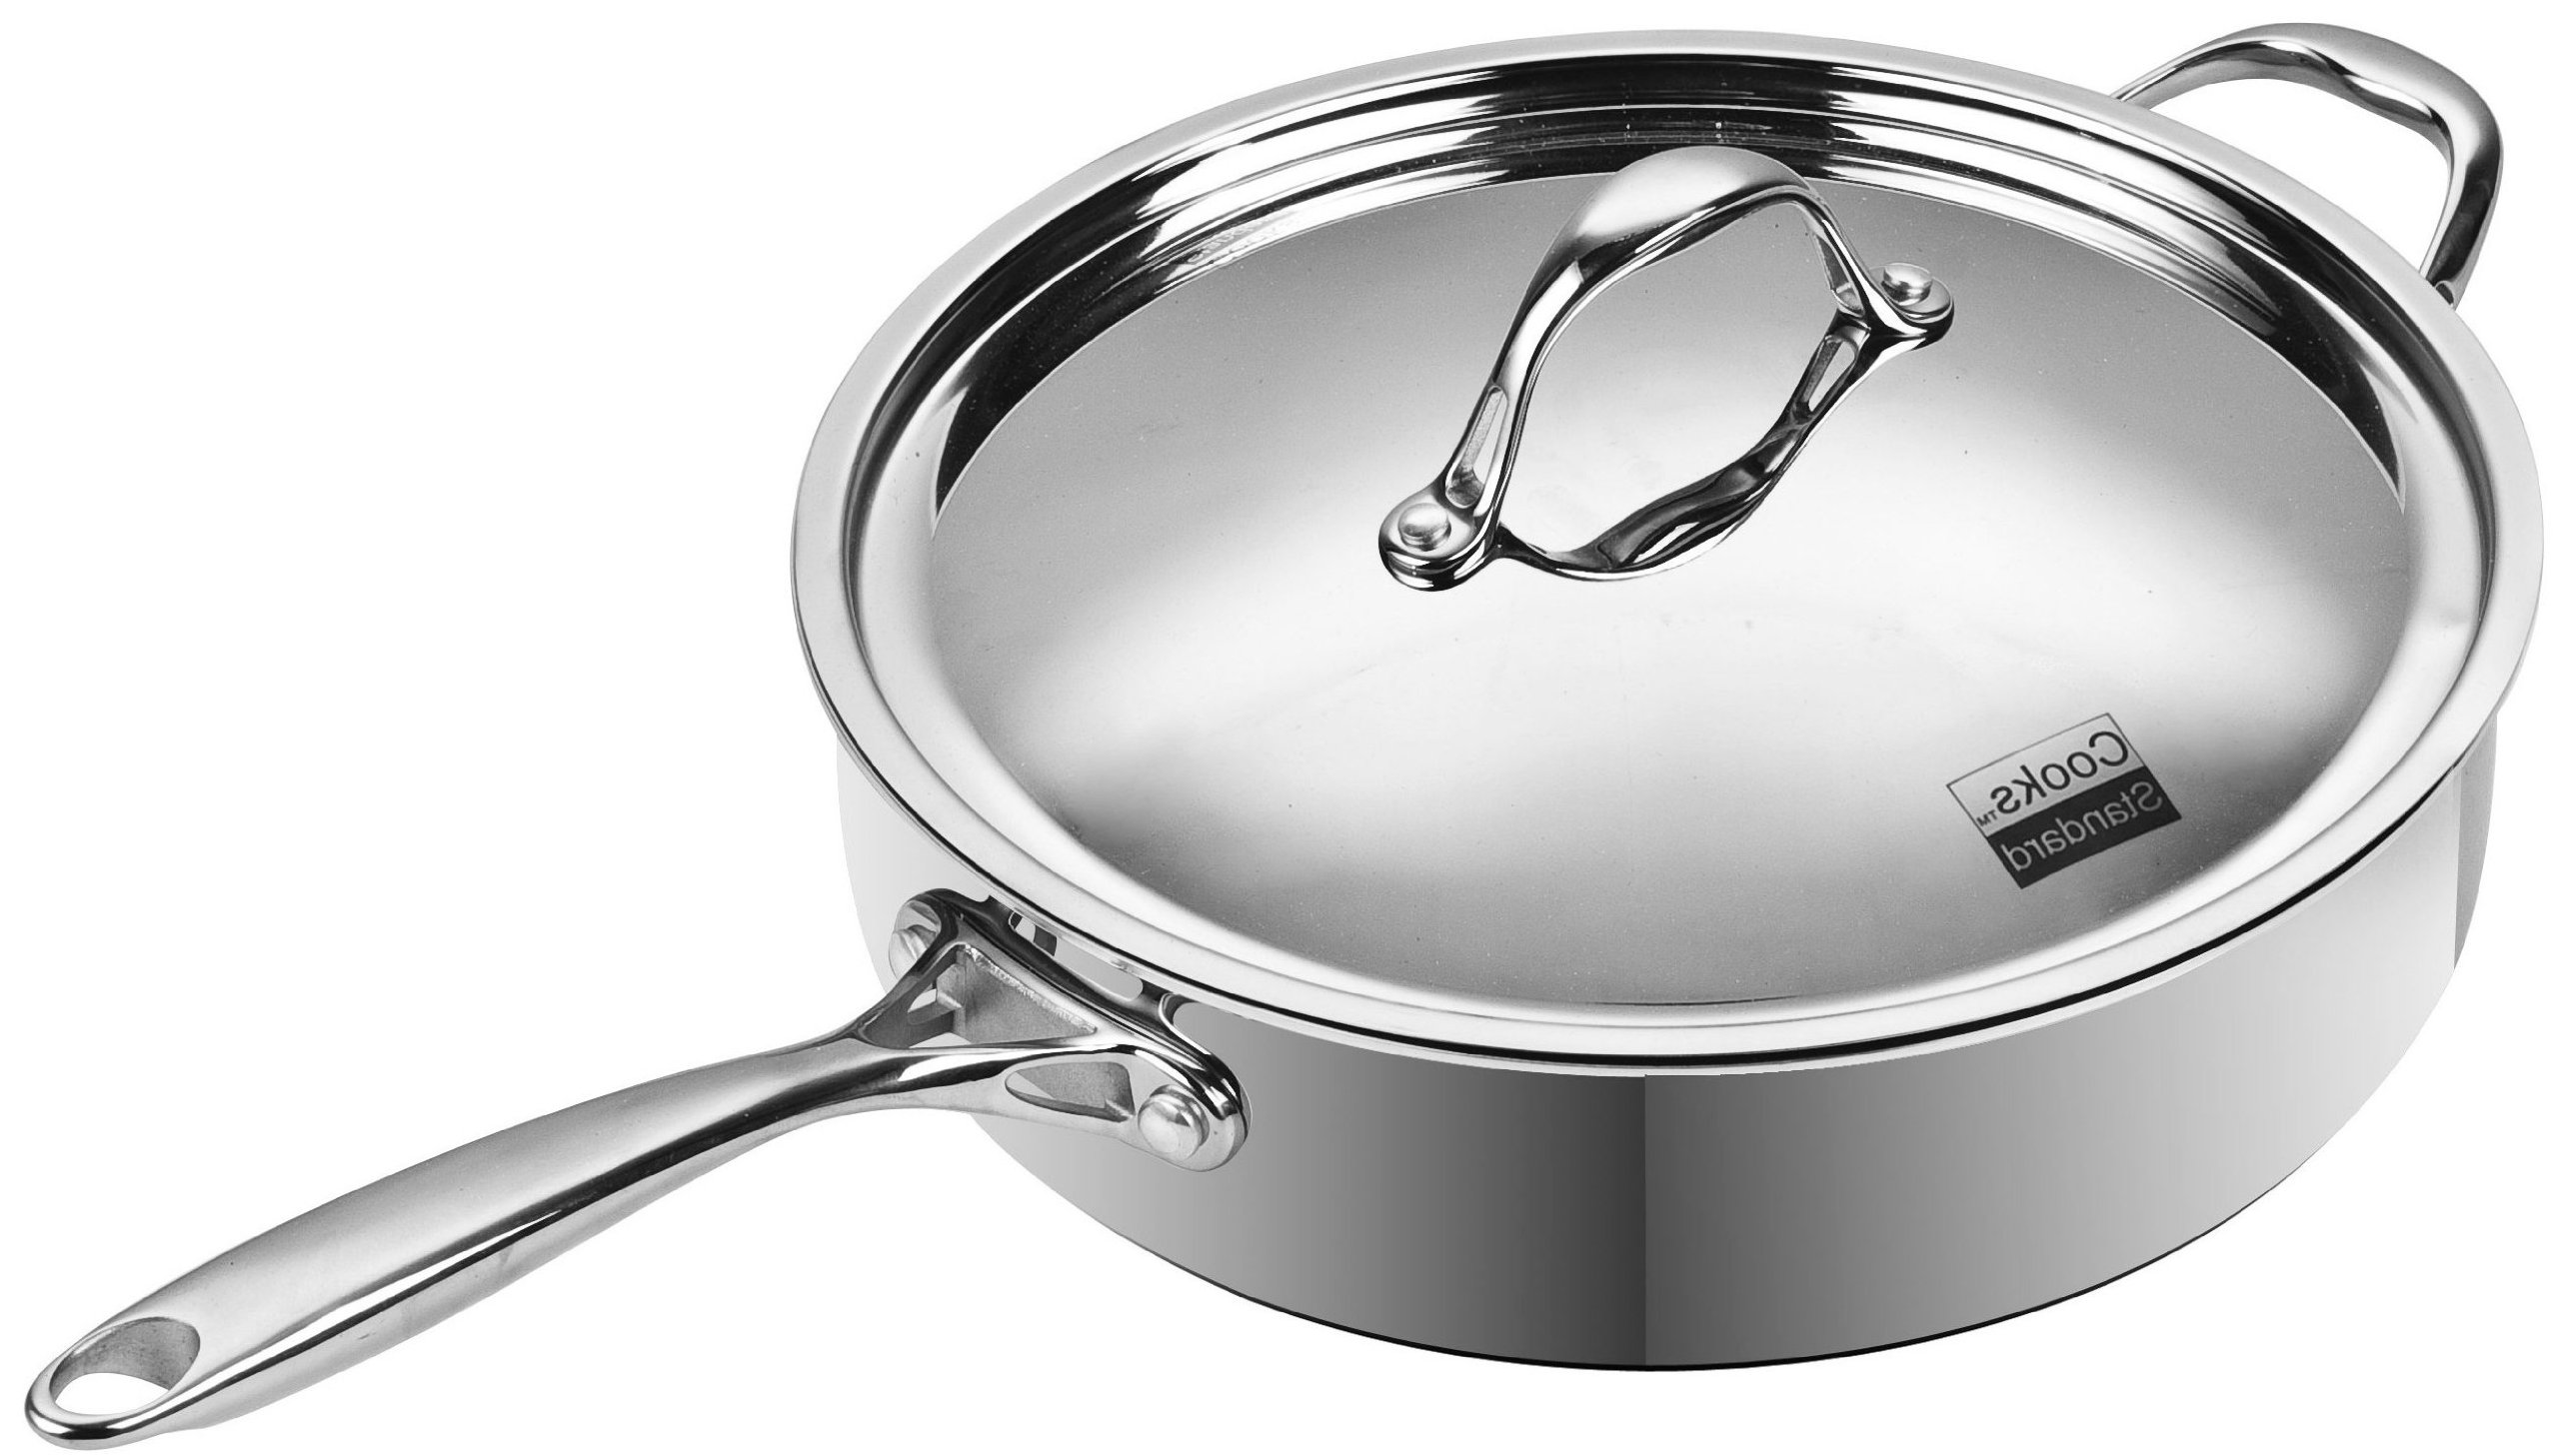 Cooks Standard 11-Inch/5 Quart Multi-Ply Clad Deep Saute Pan with Lid, Stainless Steel